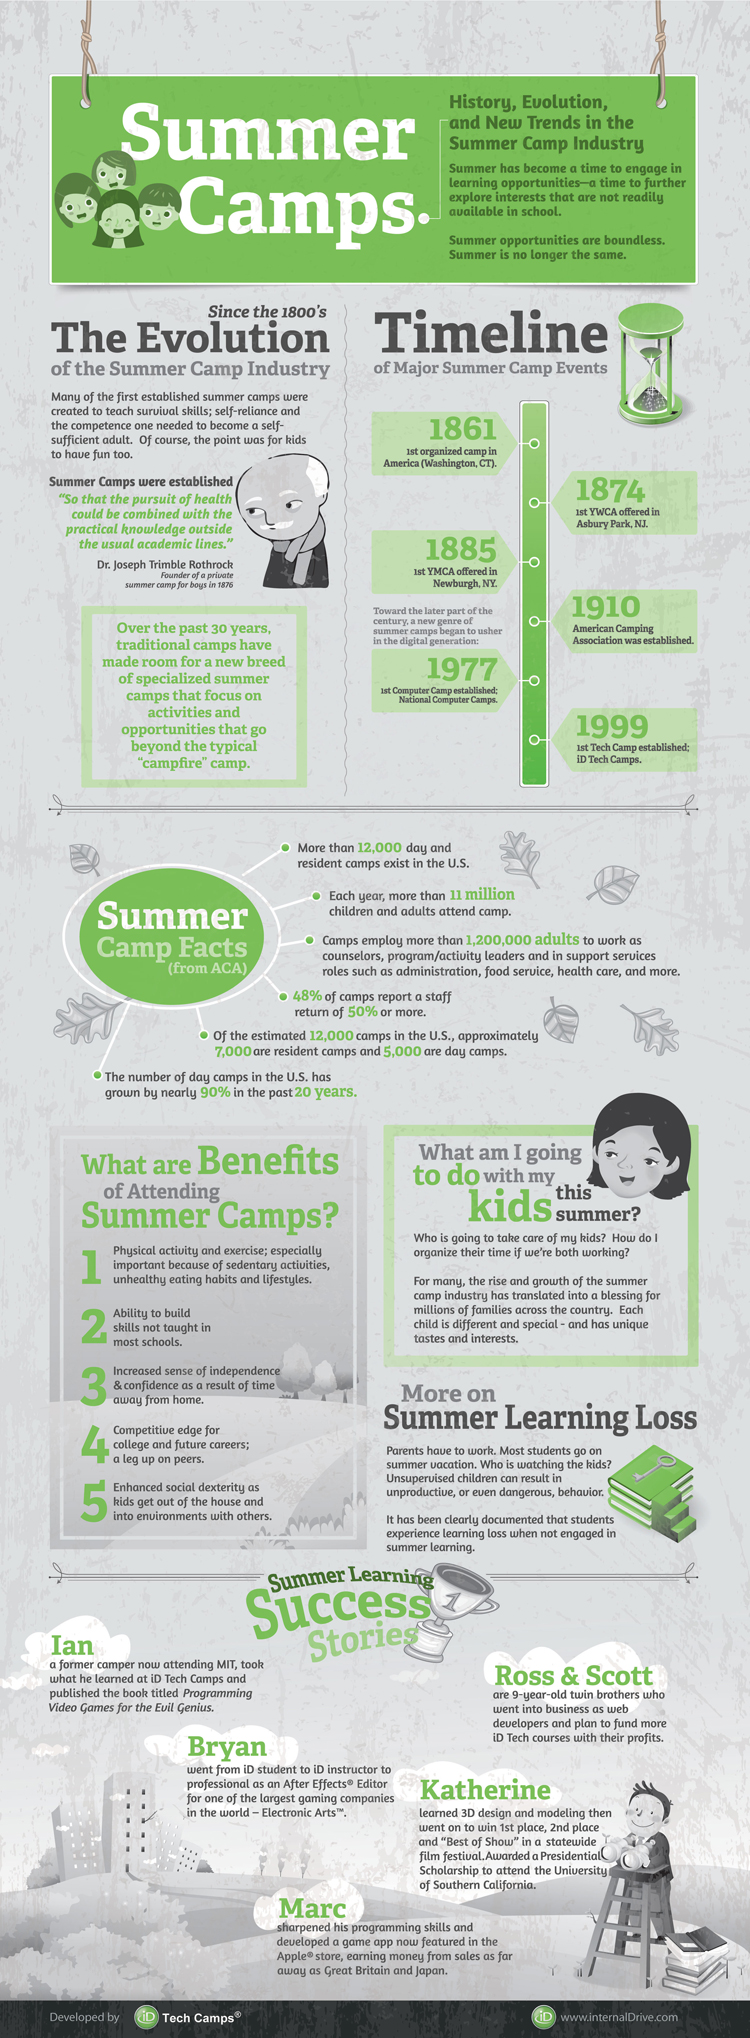 Summer Camp Industry and Trends